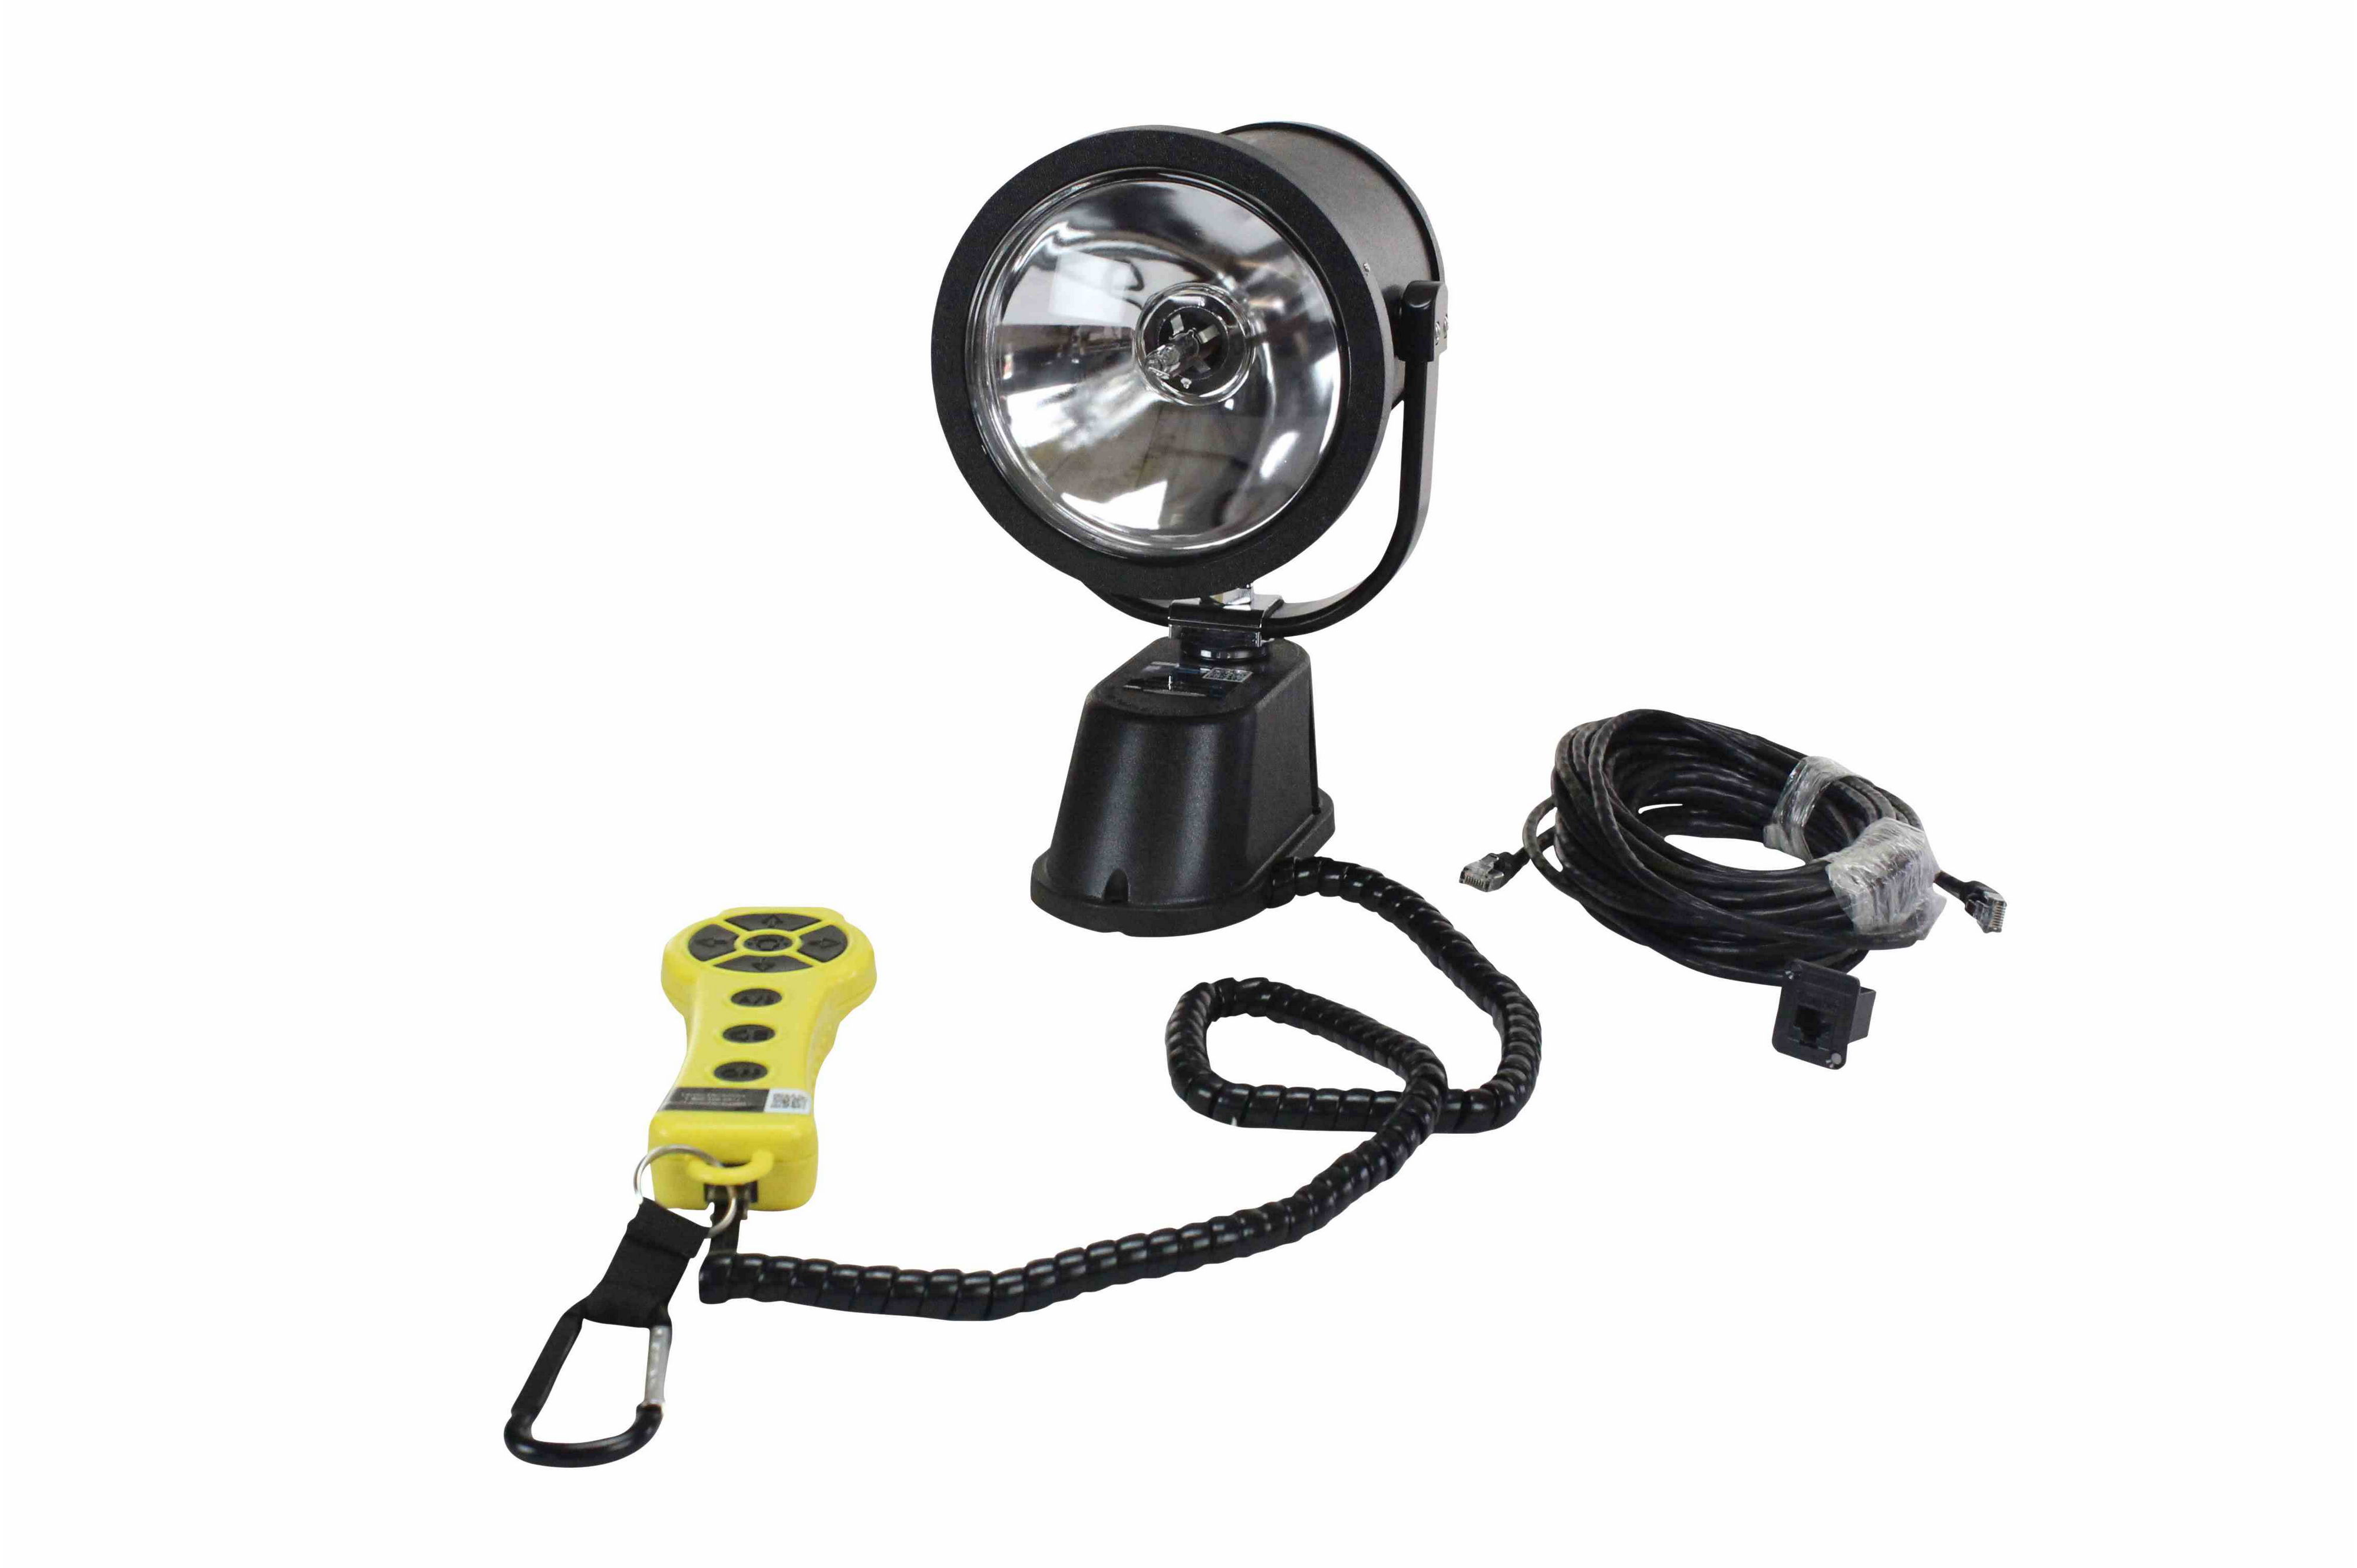 Motorized Remote Control Hid Spotlight